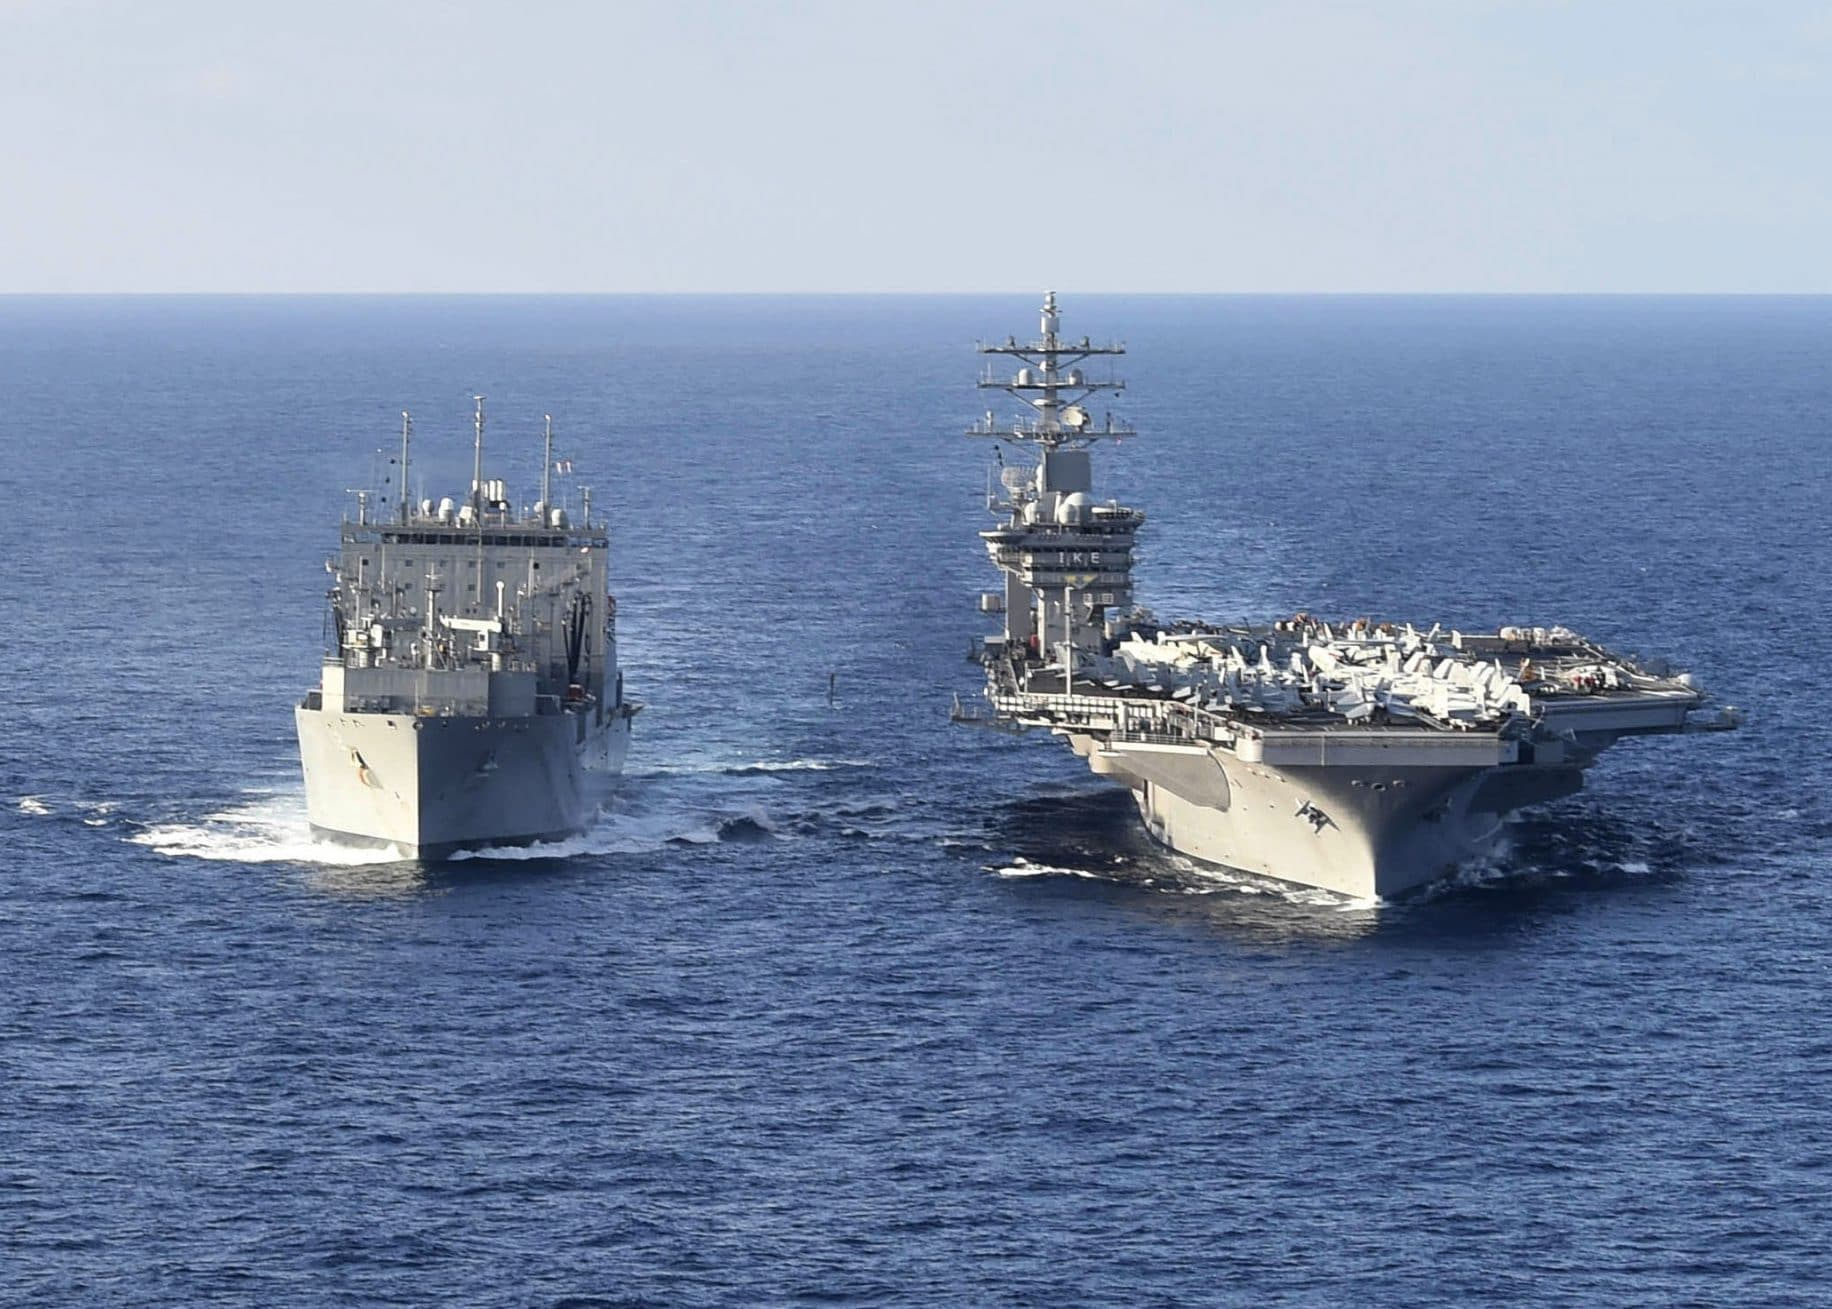 USS Dwight D. Eisenhower carrier strike group deploys without stopping at home first